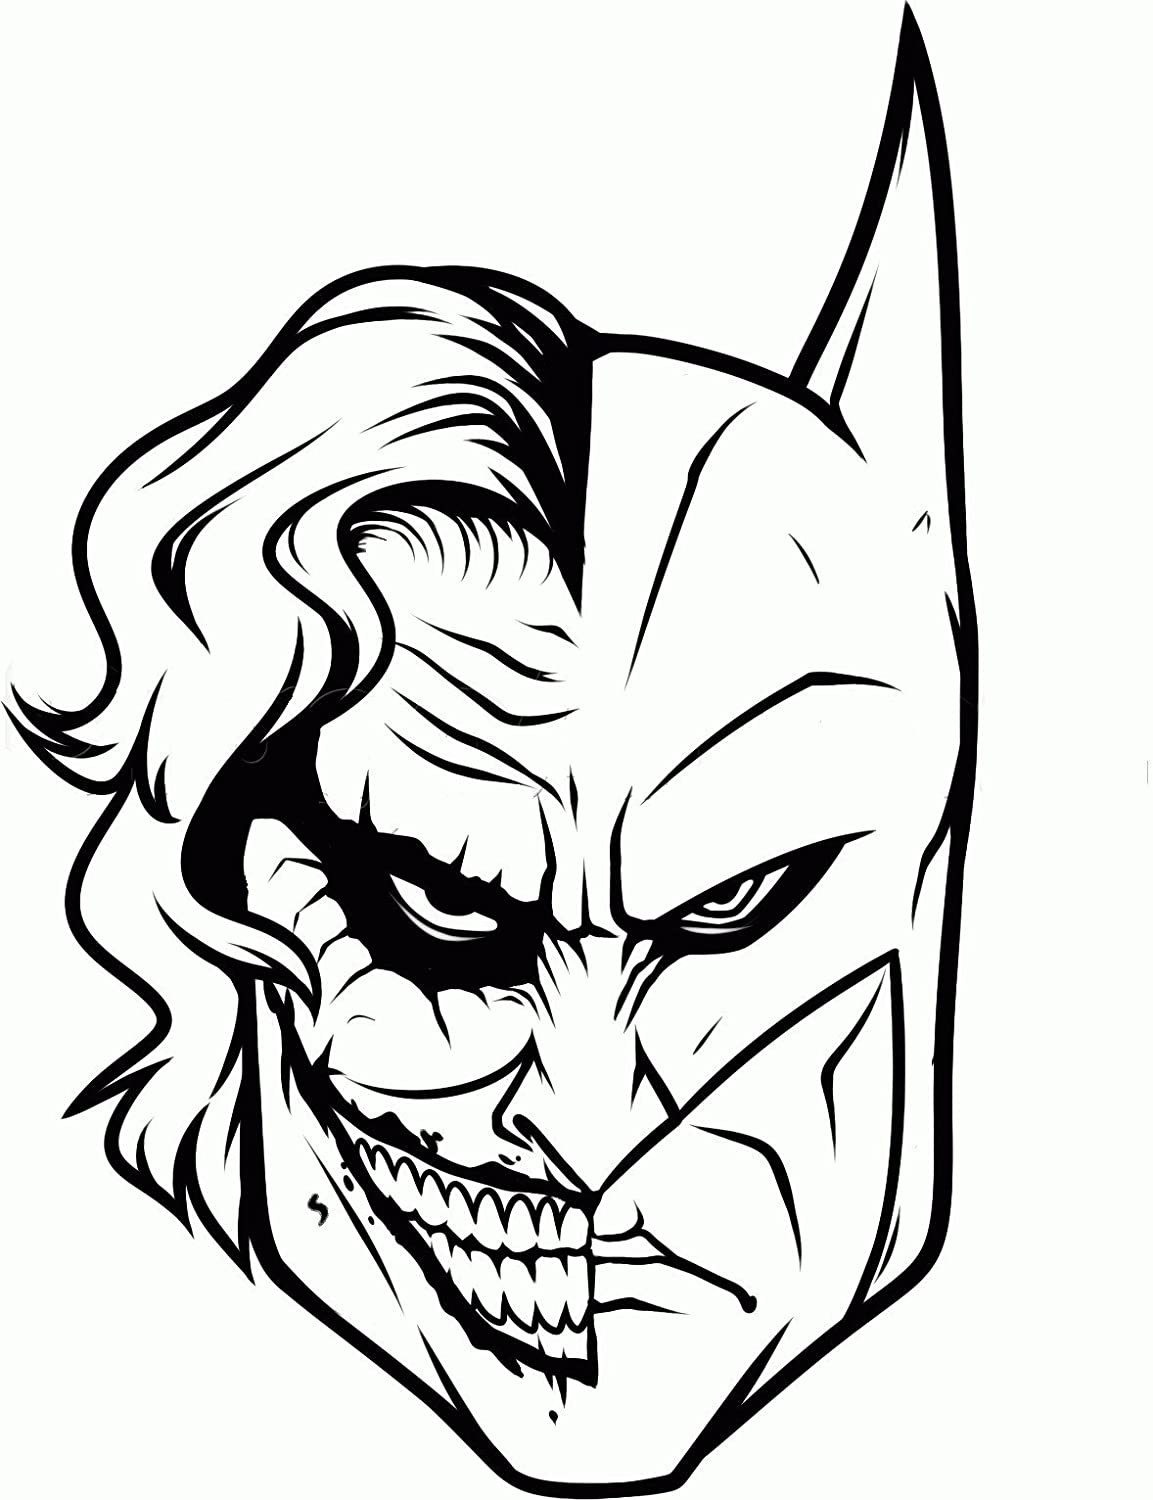 Amazon com batman joker face decal h 8 5 by l 5 inches more colors available please message us your color choice automotive